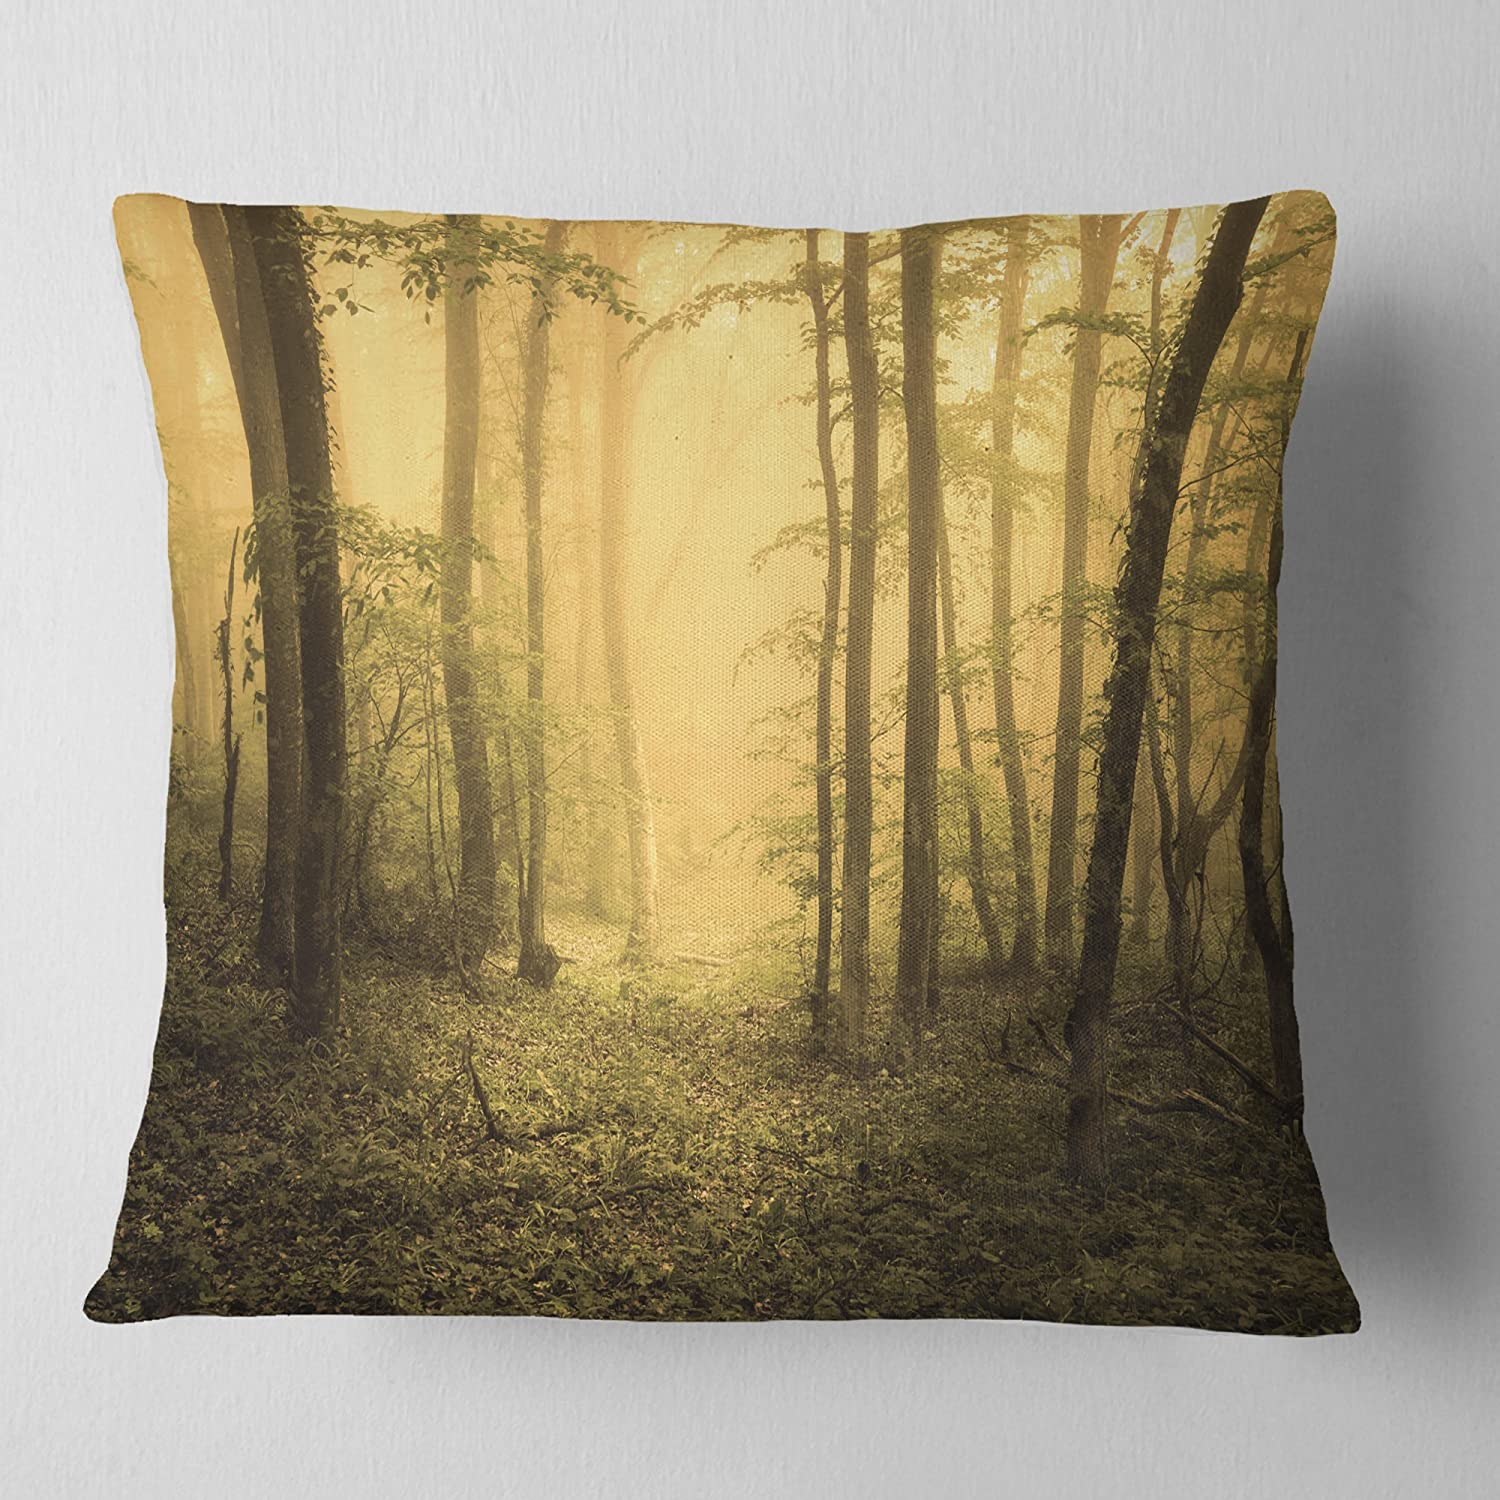 Designart Cu8445 16 16 Trail Through Yellow Foggy Forest Landscape Photography Throw Pillow 16 X 16 Amazon Ca Home Kitchen